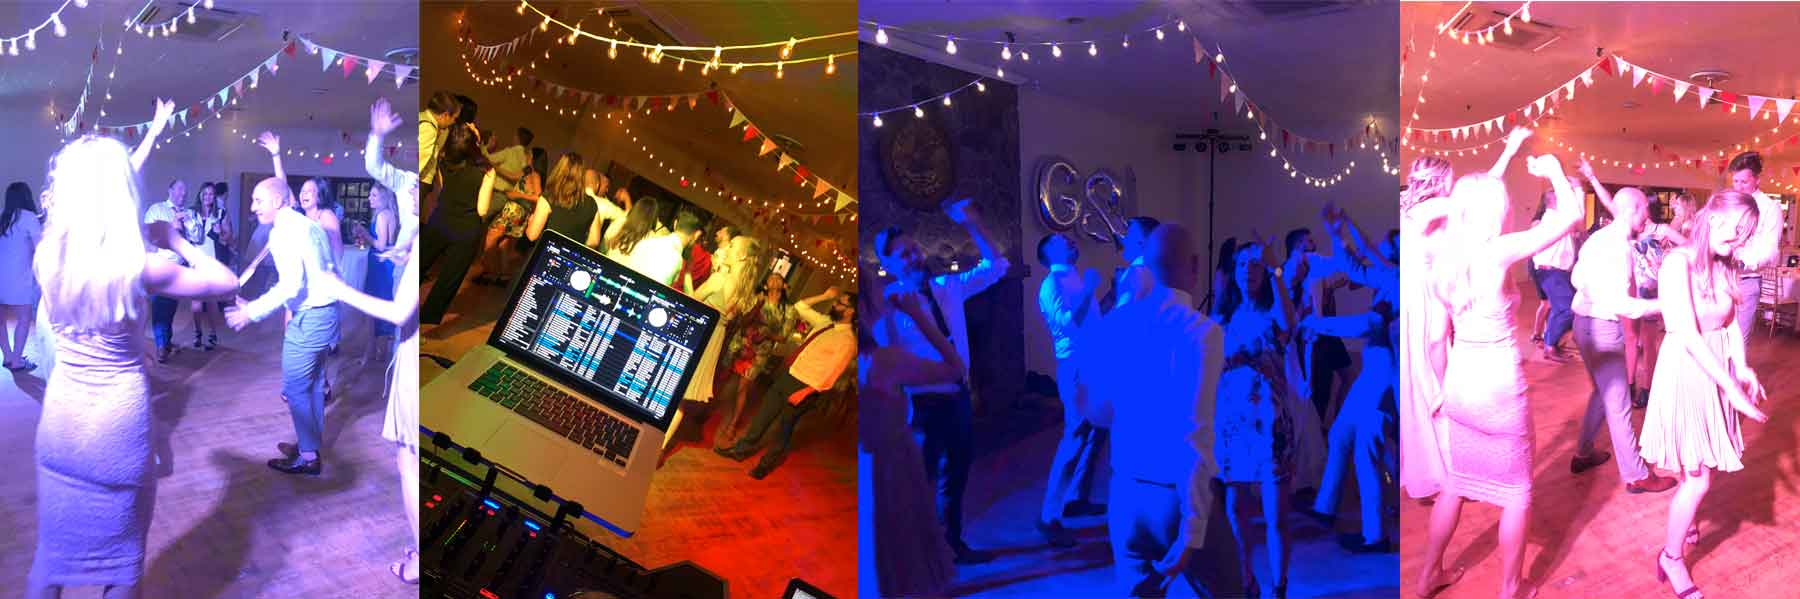 Best-Toronto-Wedding-DJs-at-Argonaut-Rowing-Club